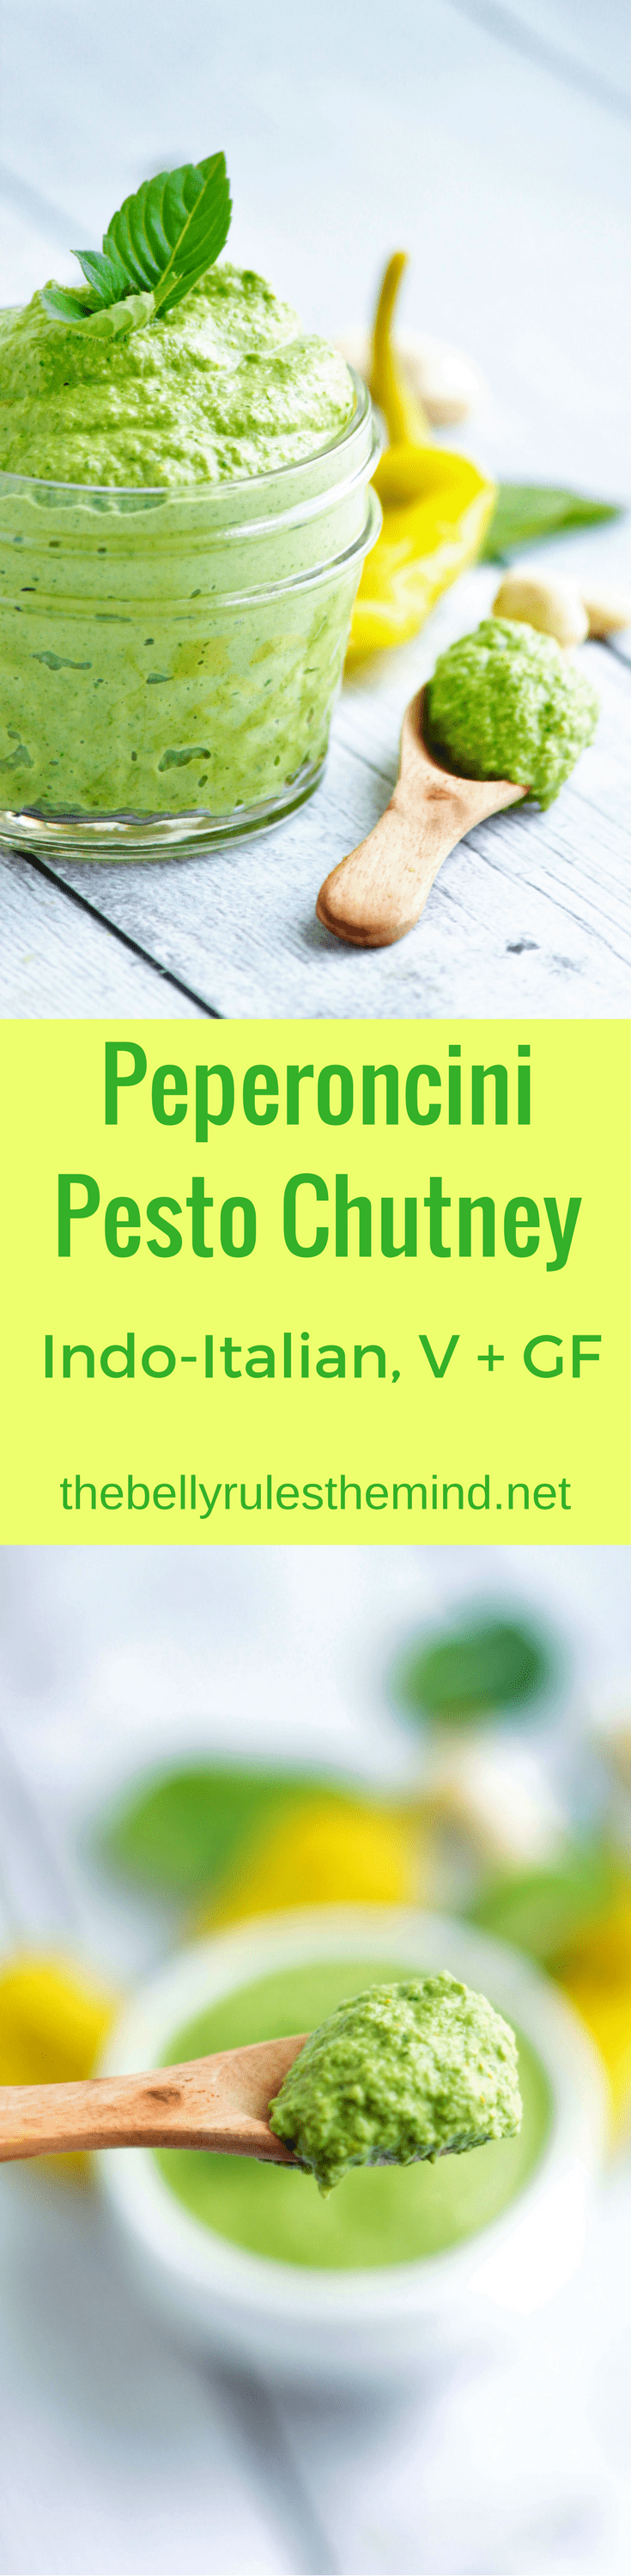 Look no more! This unique Peperoncini Pesto Chutney is one versatile sauce that goes so well with pasta, sandwiches, or even as a dip. Made with power greens Mezzetta Peperoncini and nuts, this Pesto Chutney is lip-smackingly delicious. You will instantly fall in love with the flavors. |www.thebellyrulesthemind.net @bellyrulesdmind.net To check out Mezzetta click https://ooh.li/063190e #ad #DontForgettaMezzetta #Mezzetta @Mezzetta